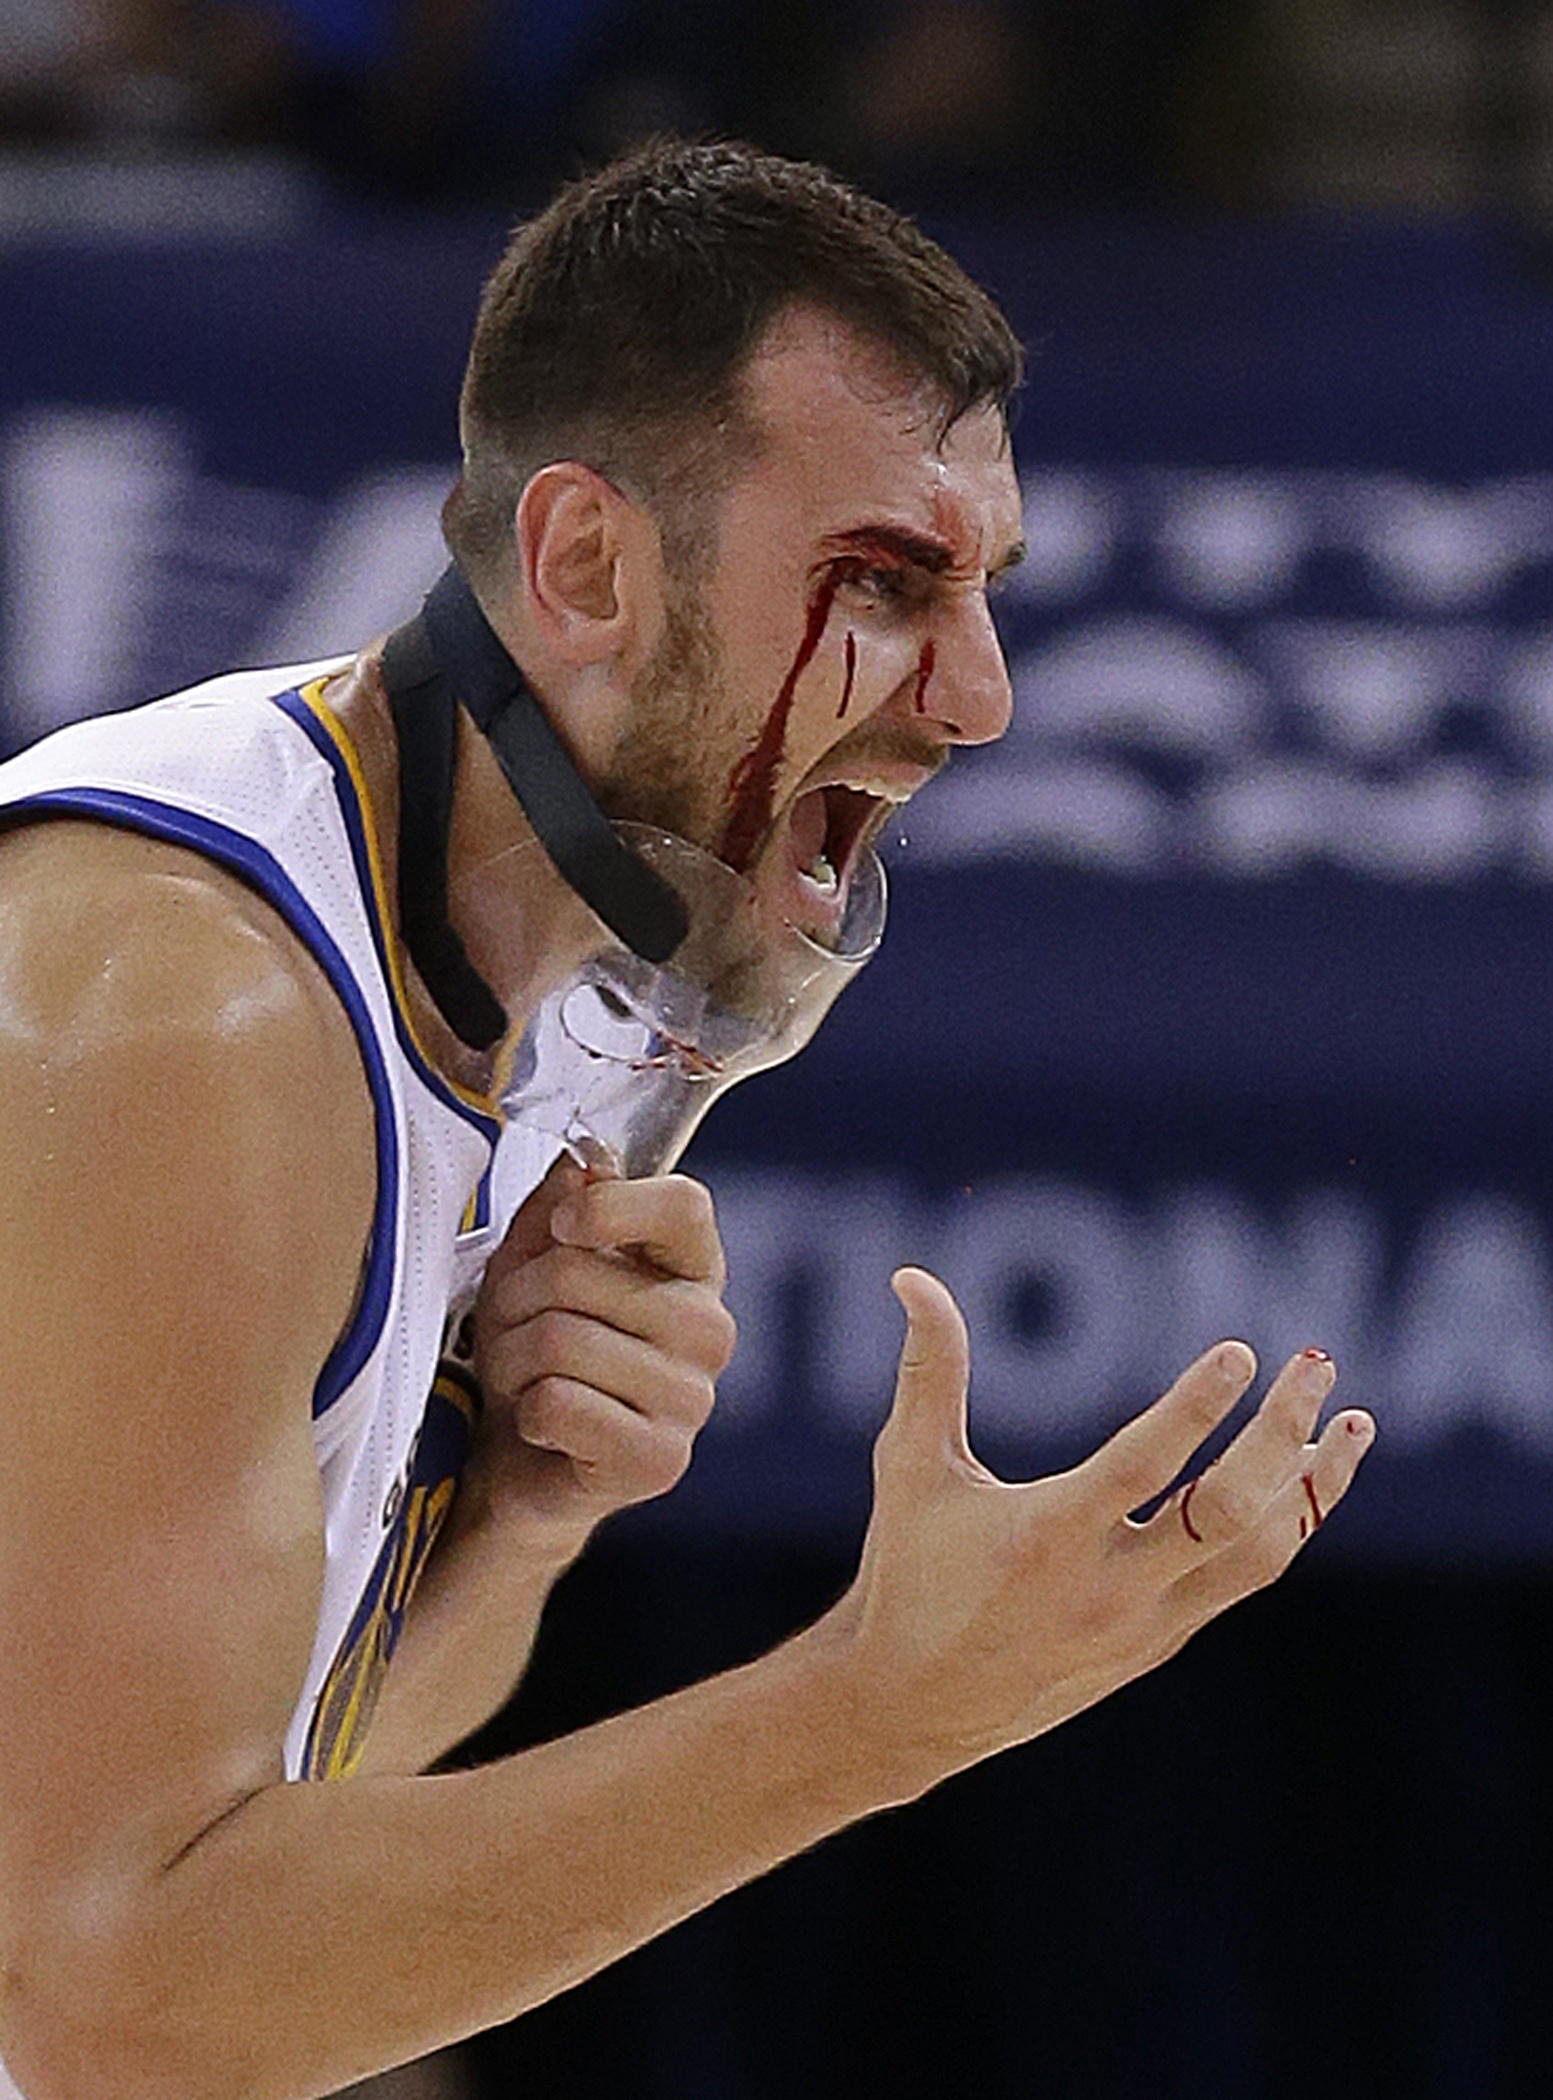 Golden State Warriors' Andrew Bogut removes his protective mask after receiving a laceration near his eye during the second half of an NBA basketball game against the New Orleans Pelicans on Tuesday, Oct. 27, 2015, in Oakland, Calif. Bogut required stitch